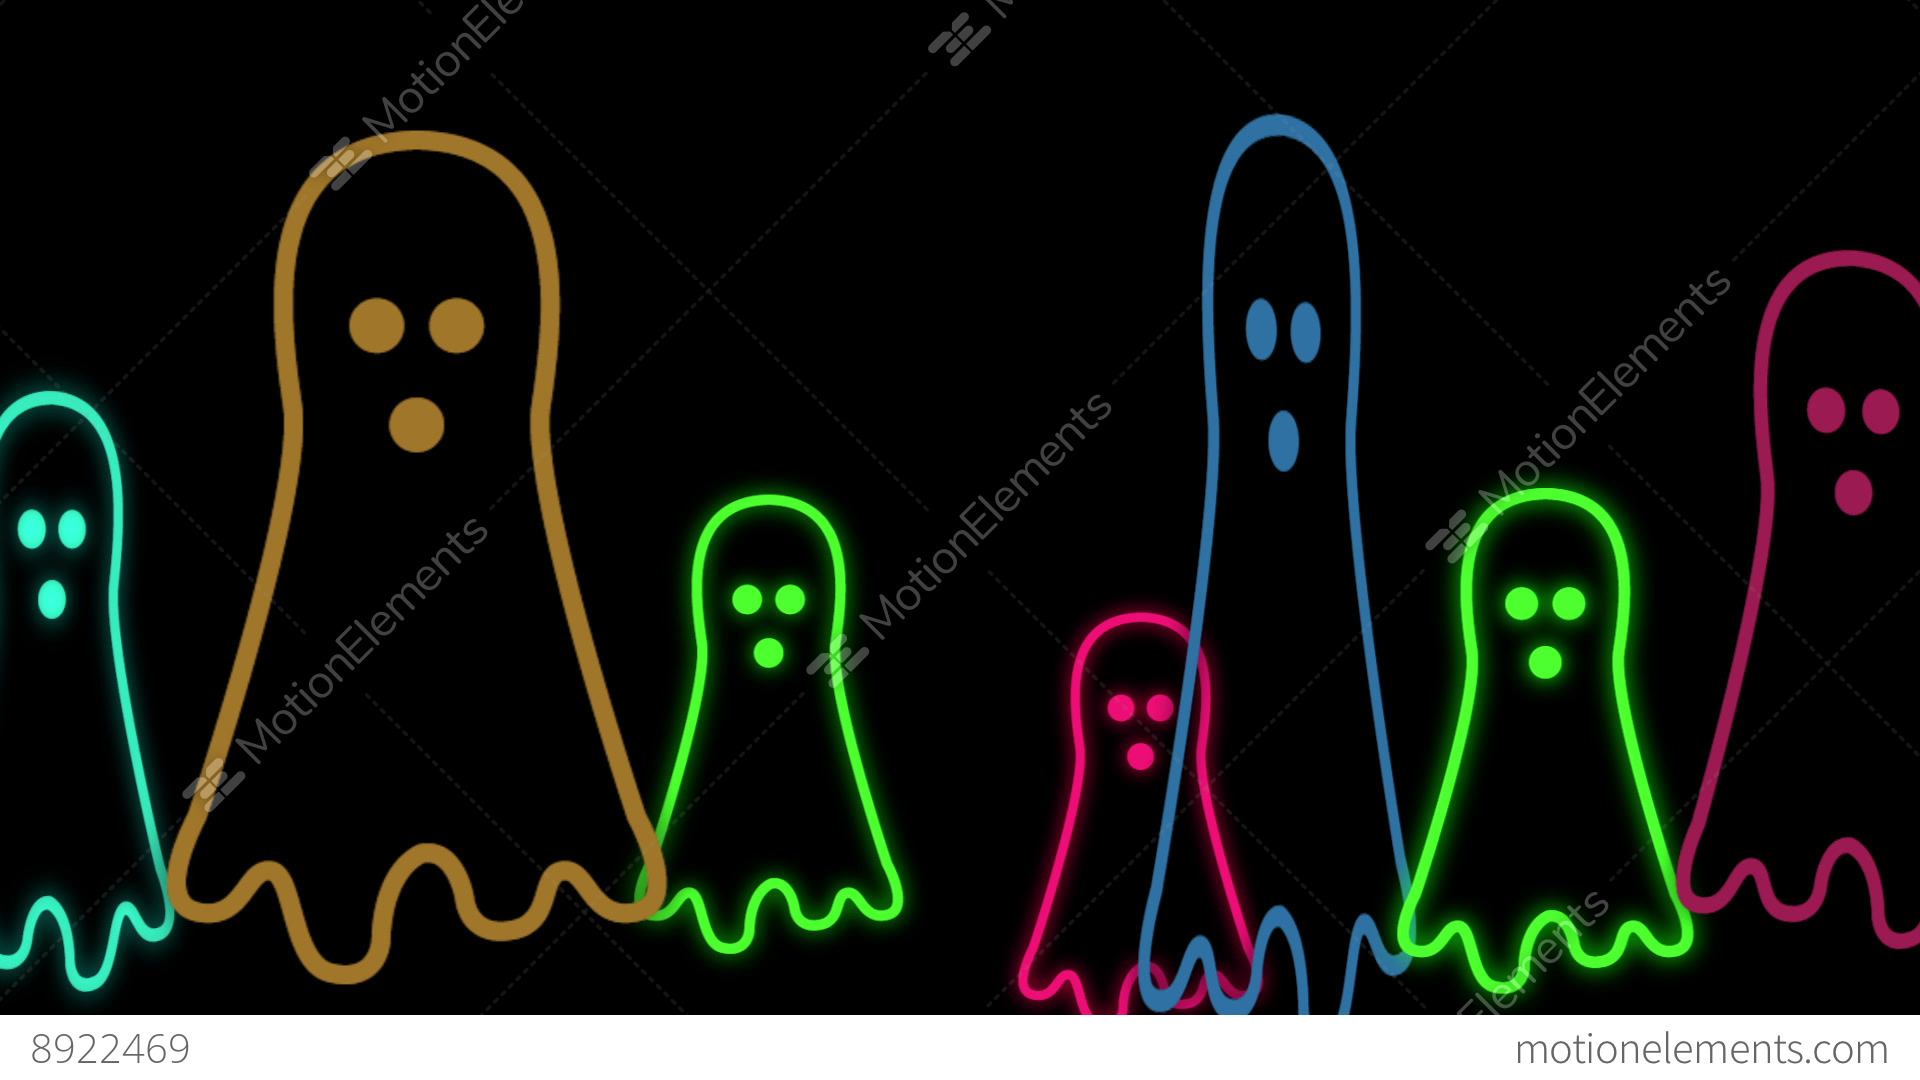 Halloween stock footage free download